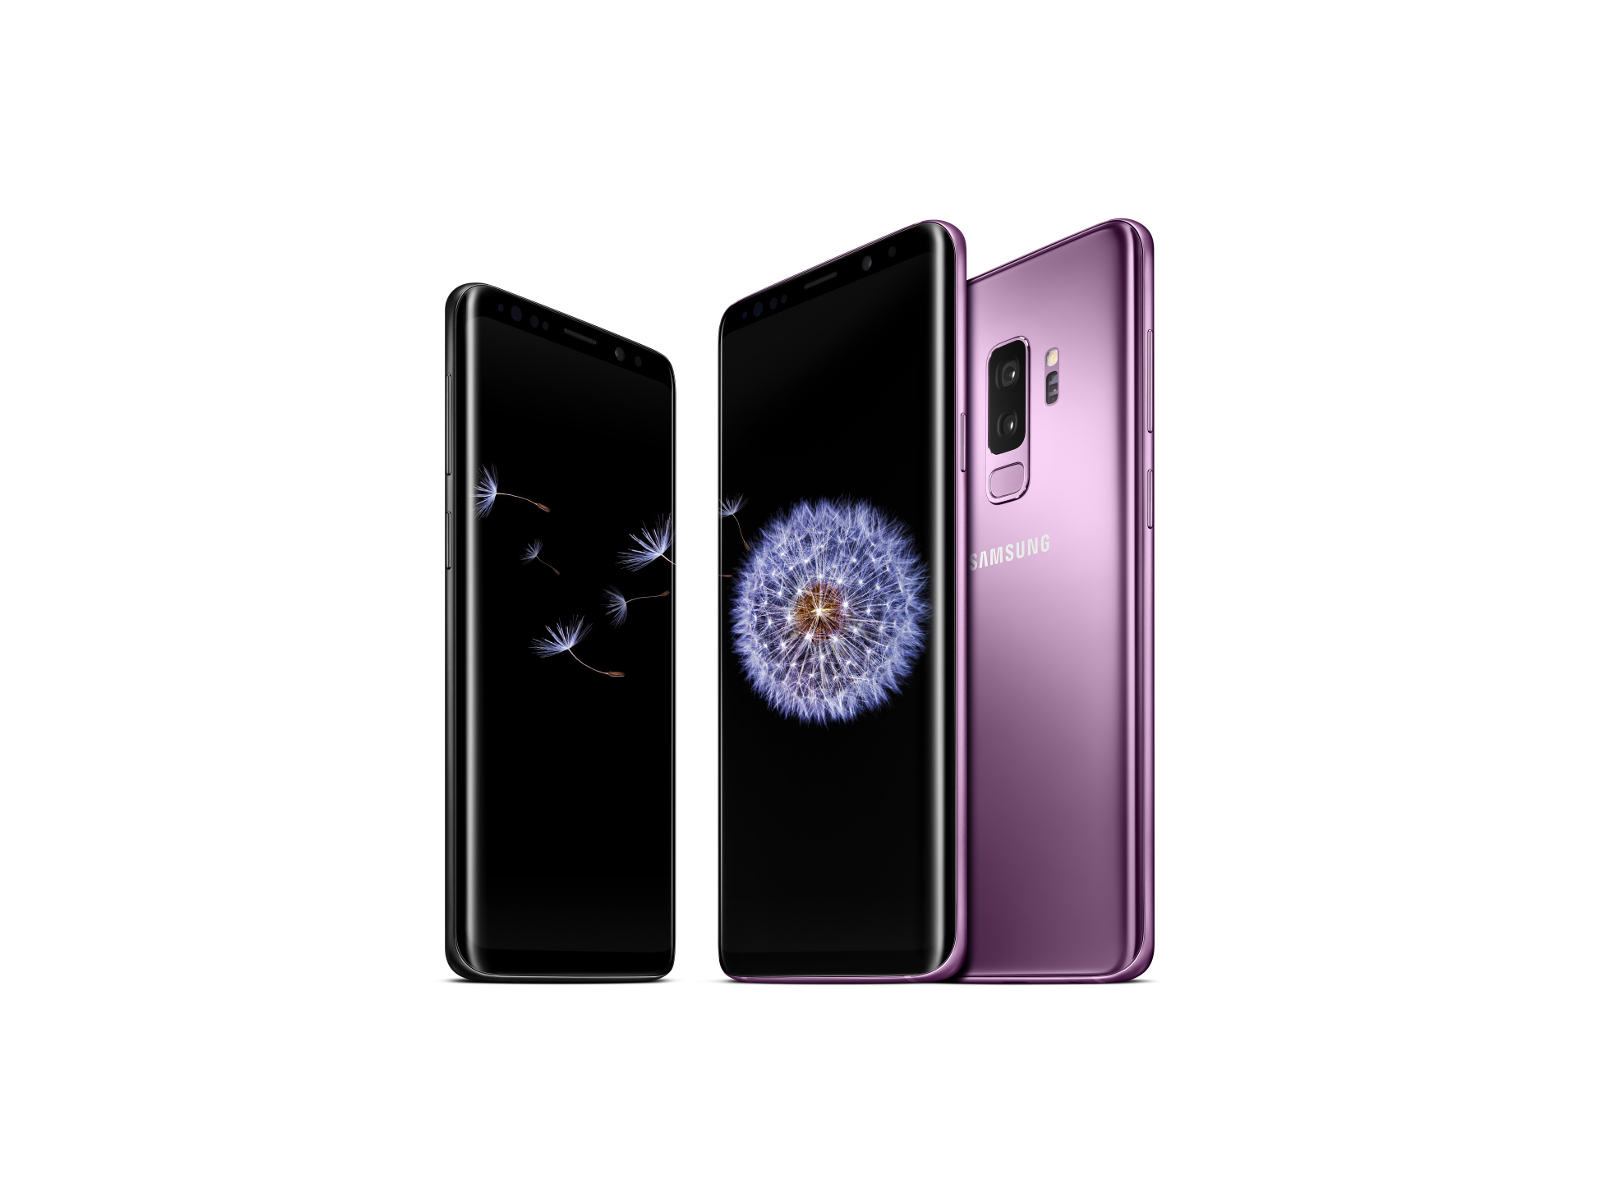 Galaxy-S9-and-S9.jpg